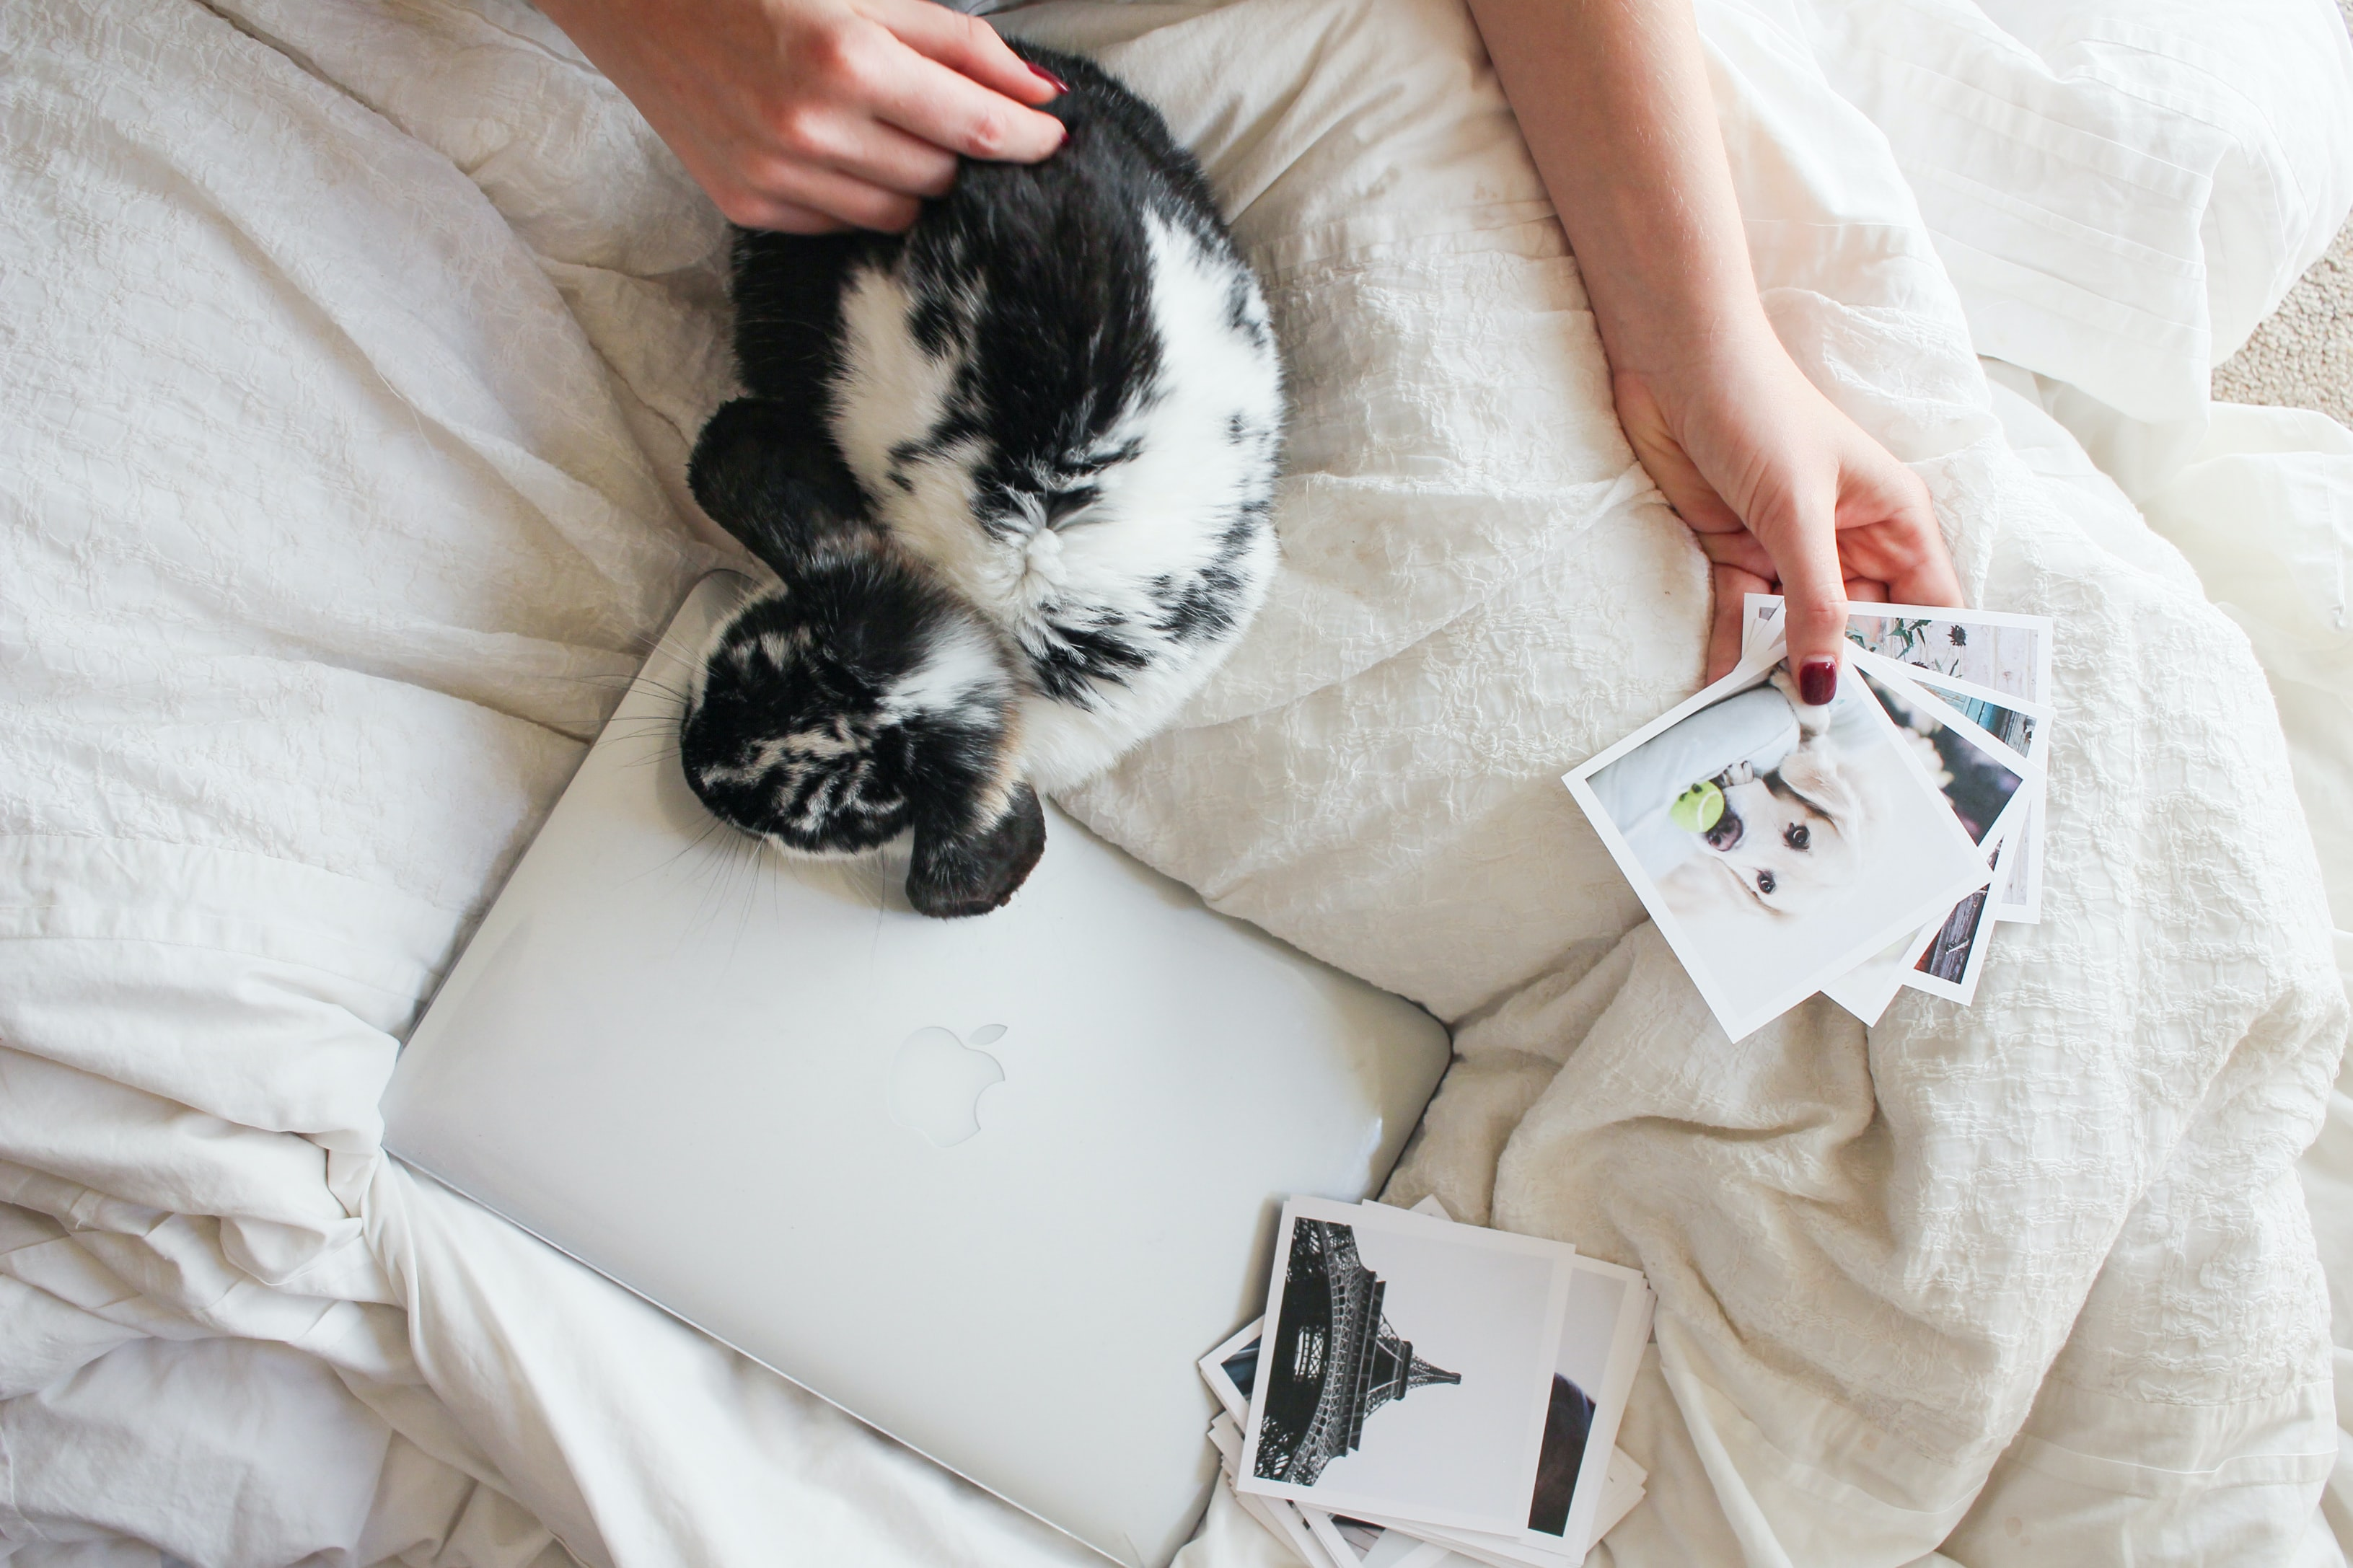 A person stroking a rabbit while looking at photo prints in bed